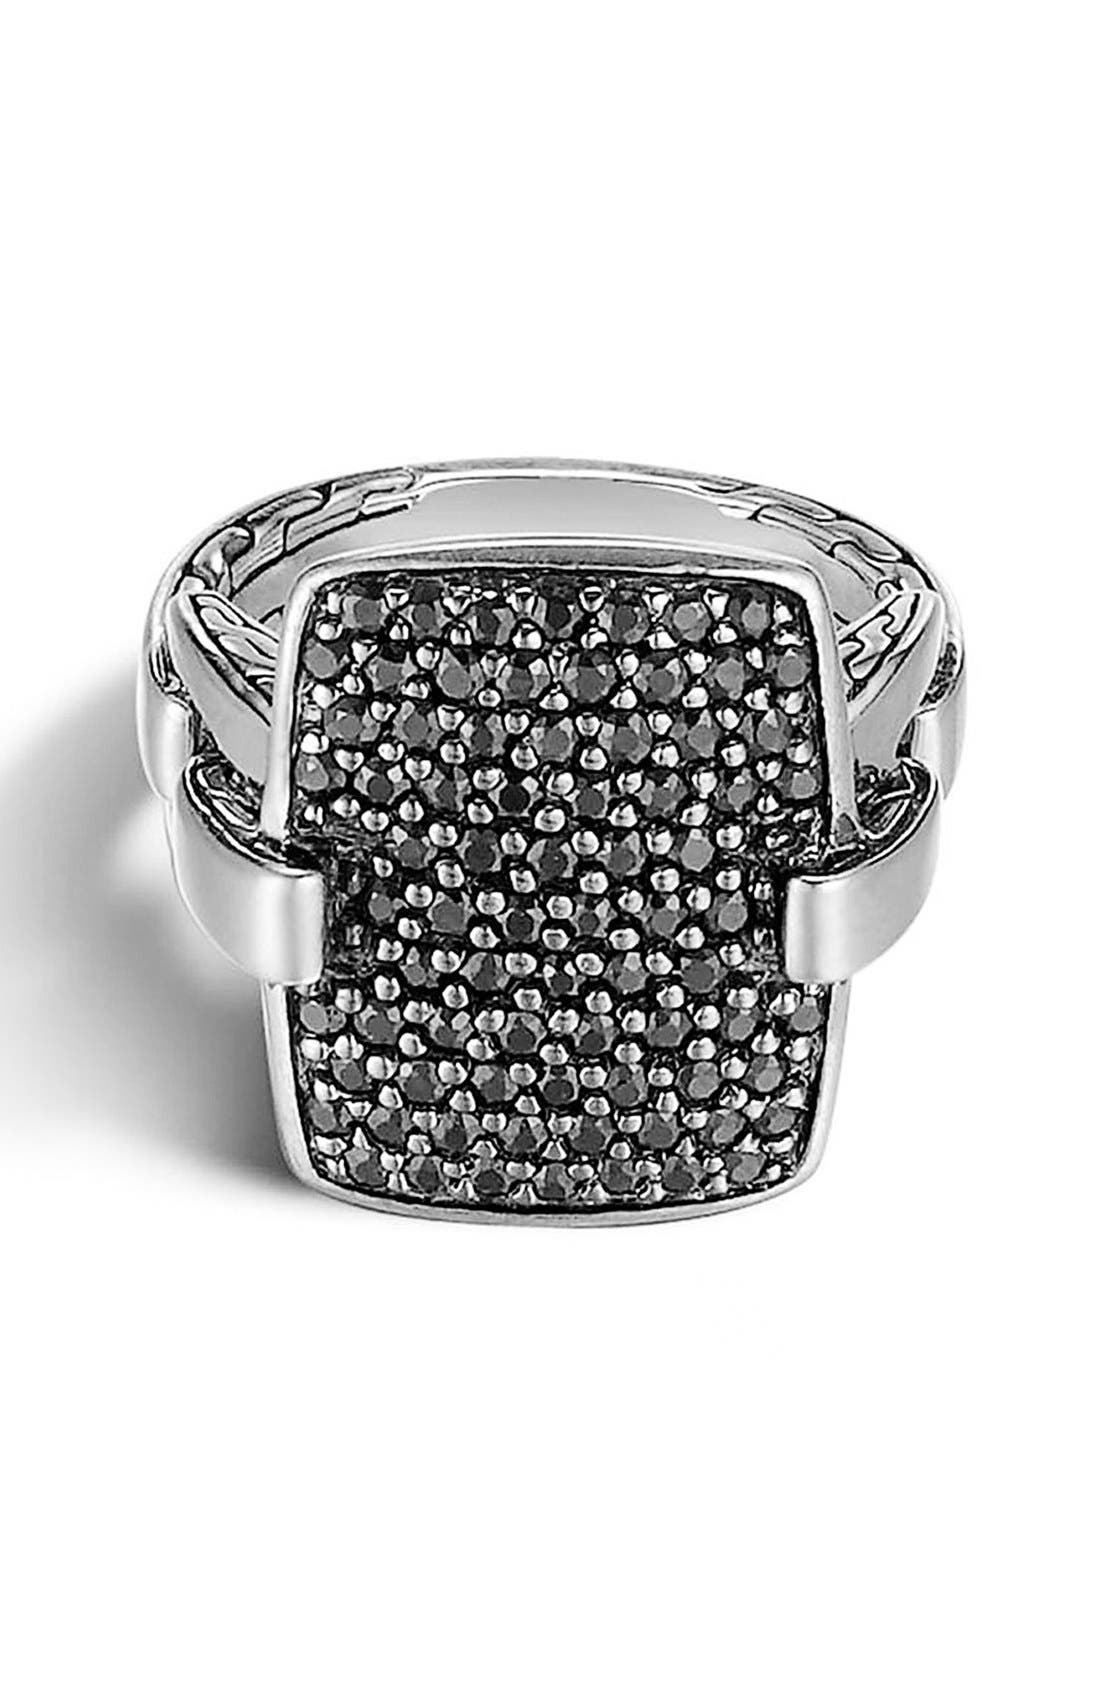 Alternate Image 1 Selected - John Hardy 'Classic Chain' Rectangular Ring